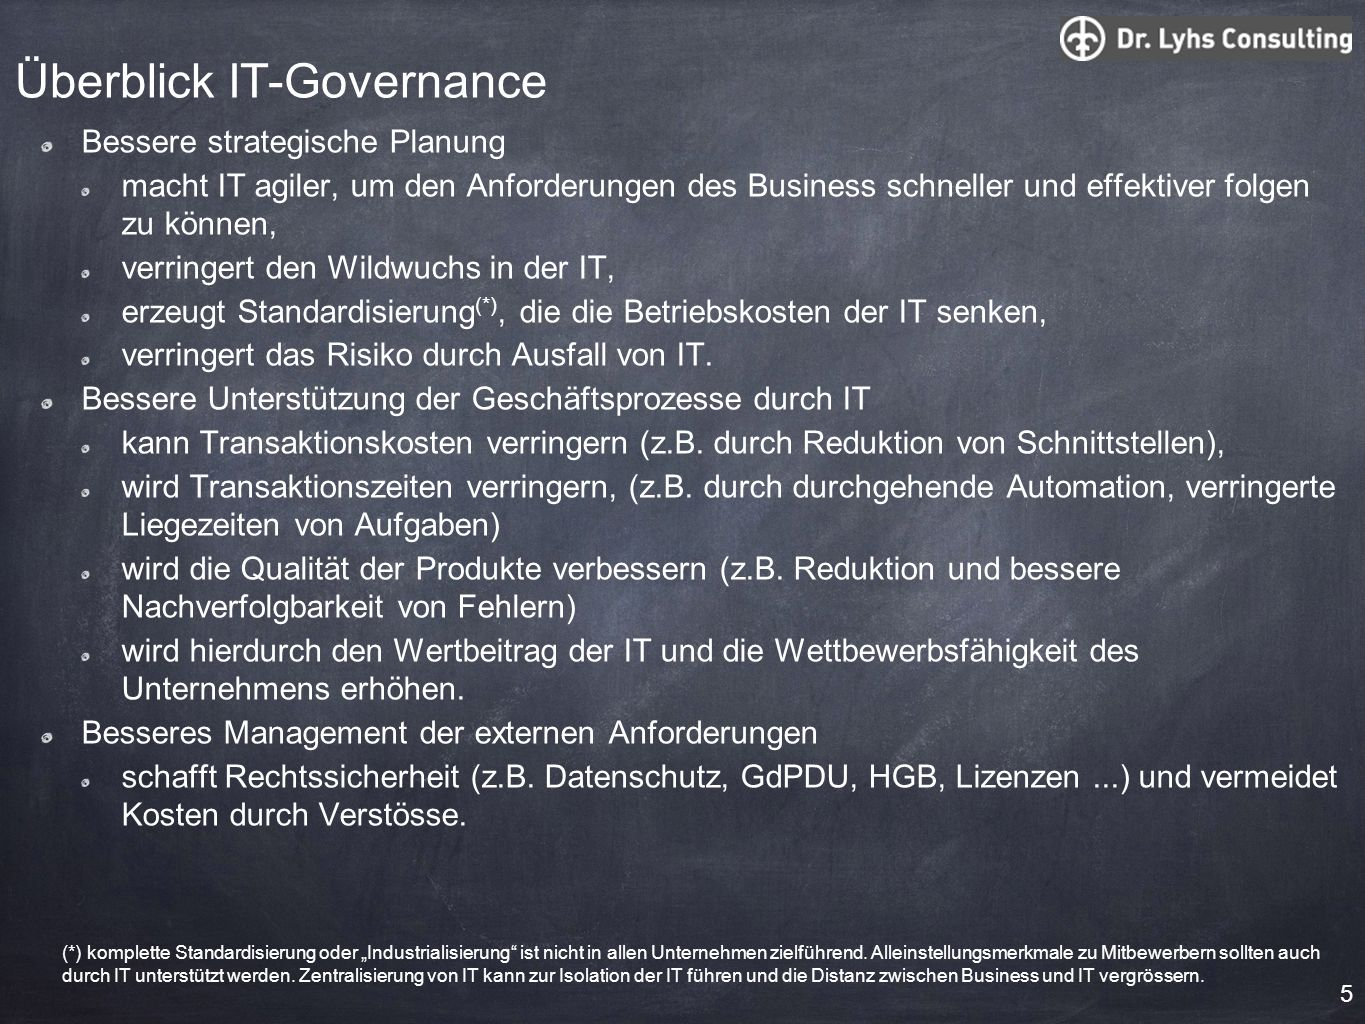 Überblick IT-Governance